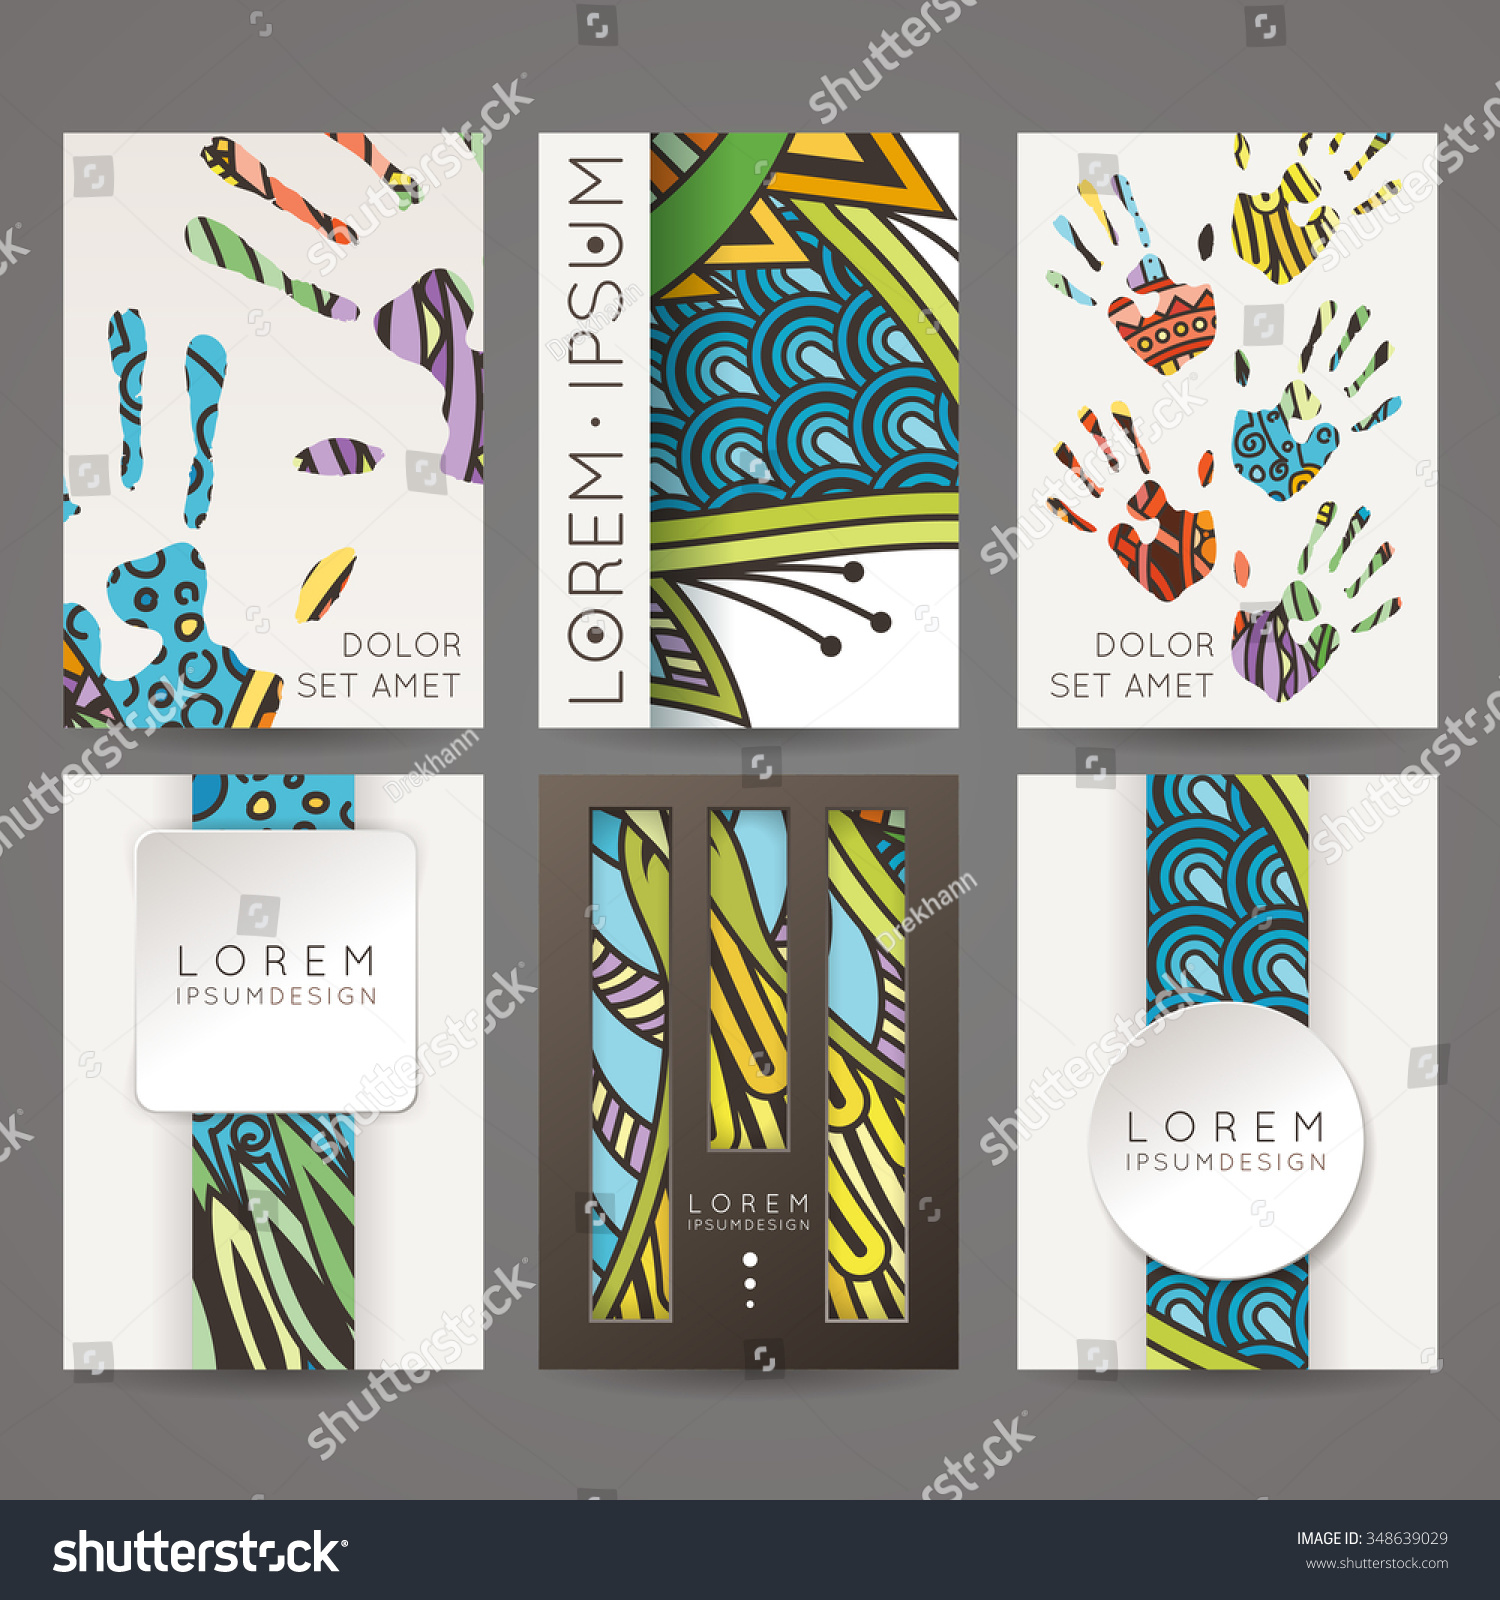 Set vector design templates brochures random stock vector for Colorful brochure templates